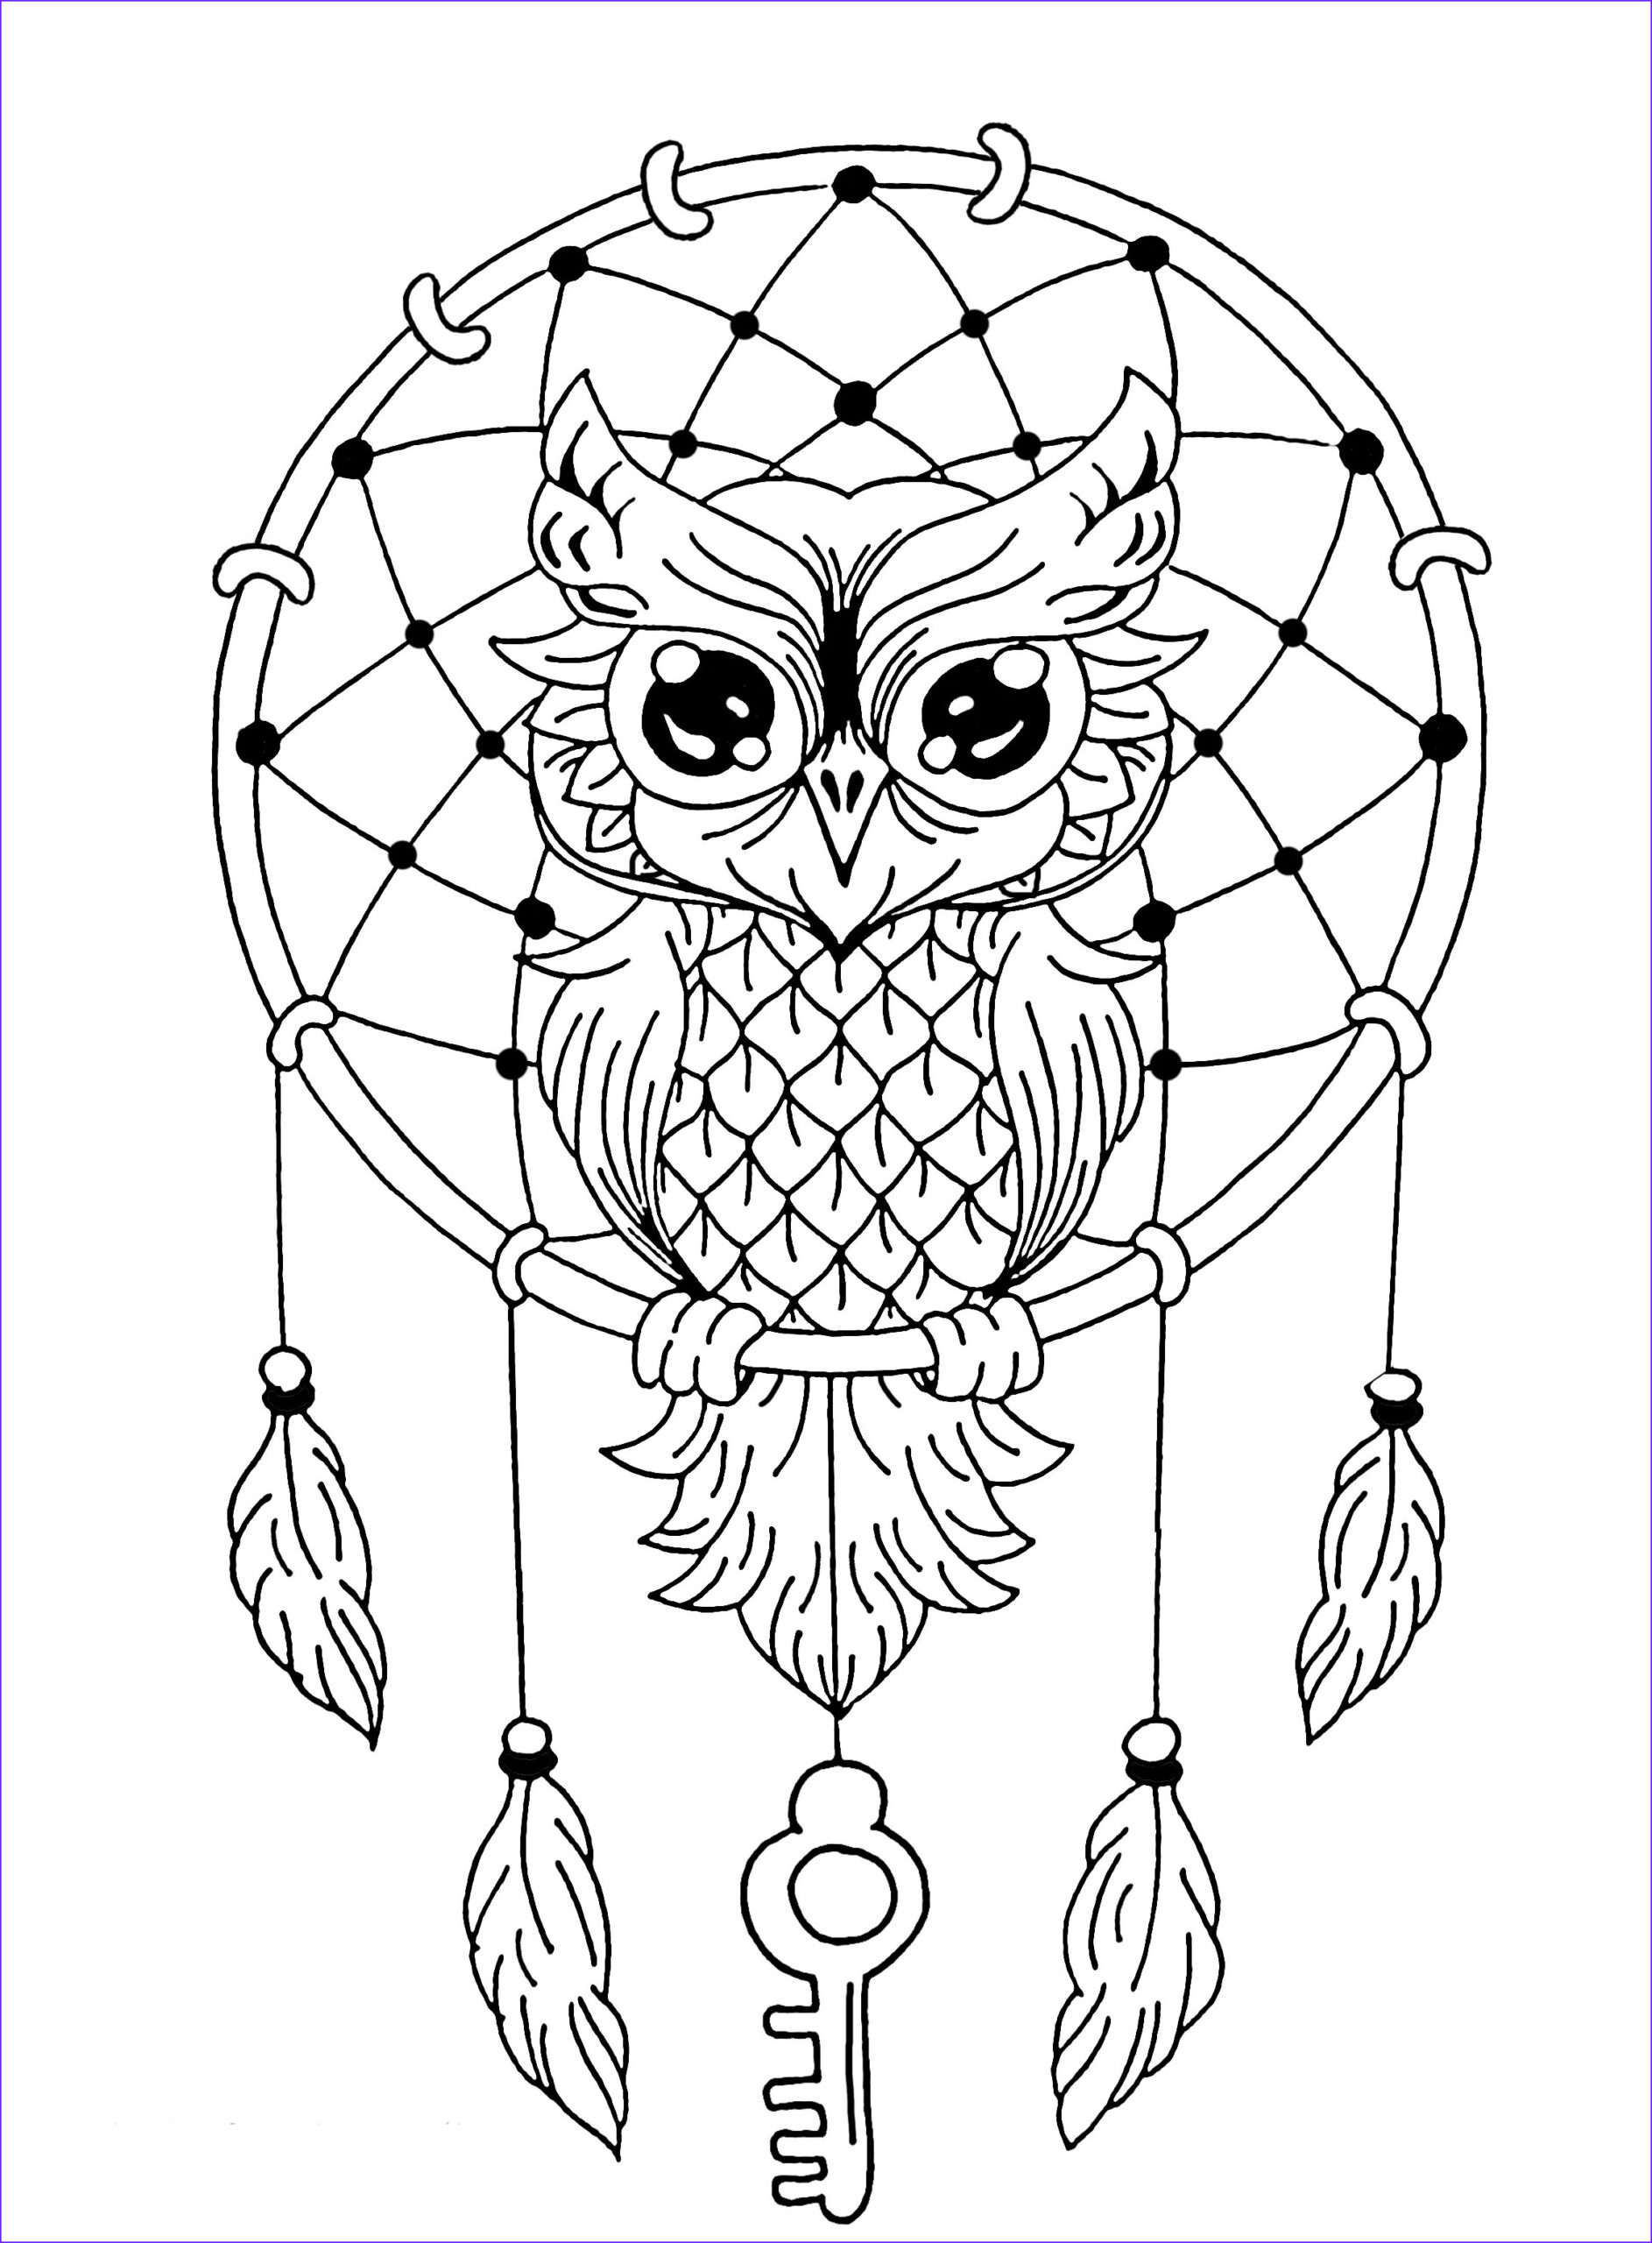 Owl Coloring Beautiful Image Owl Dreamcatcher Owls Adult Coloring Pages